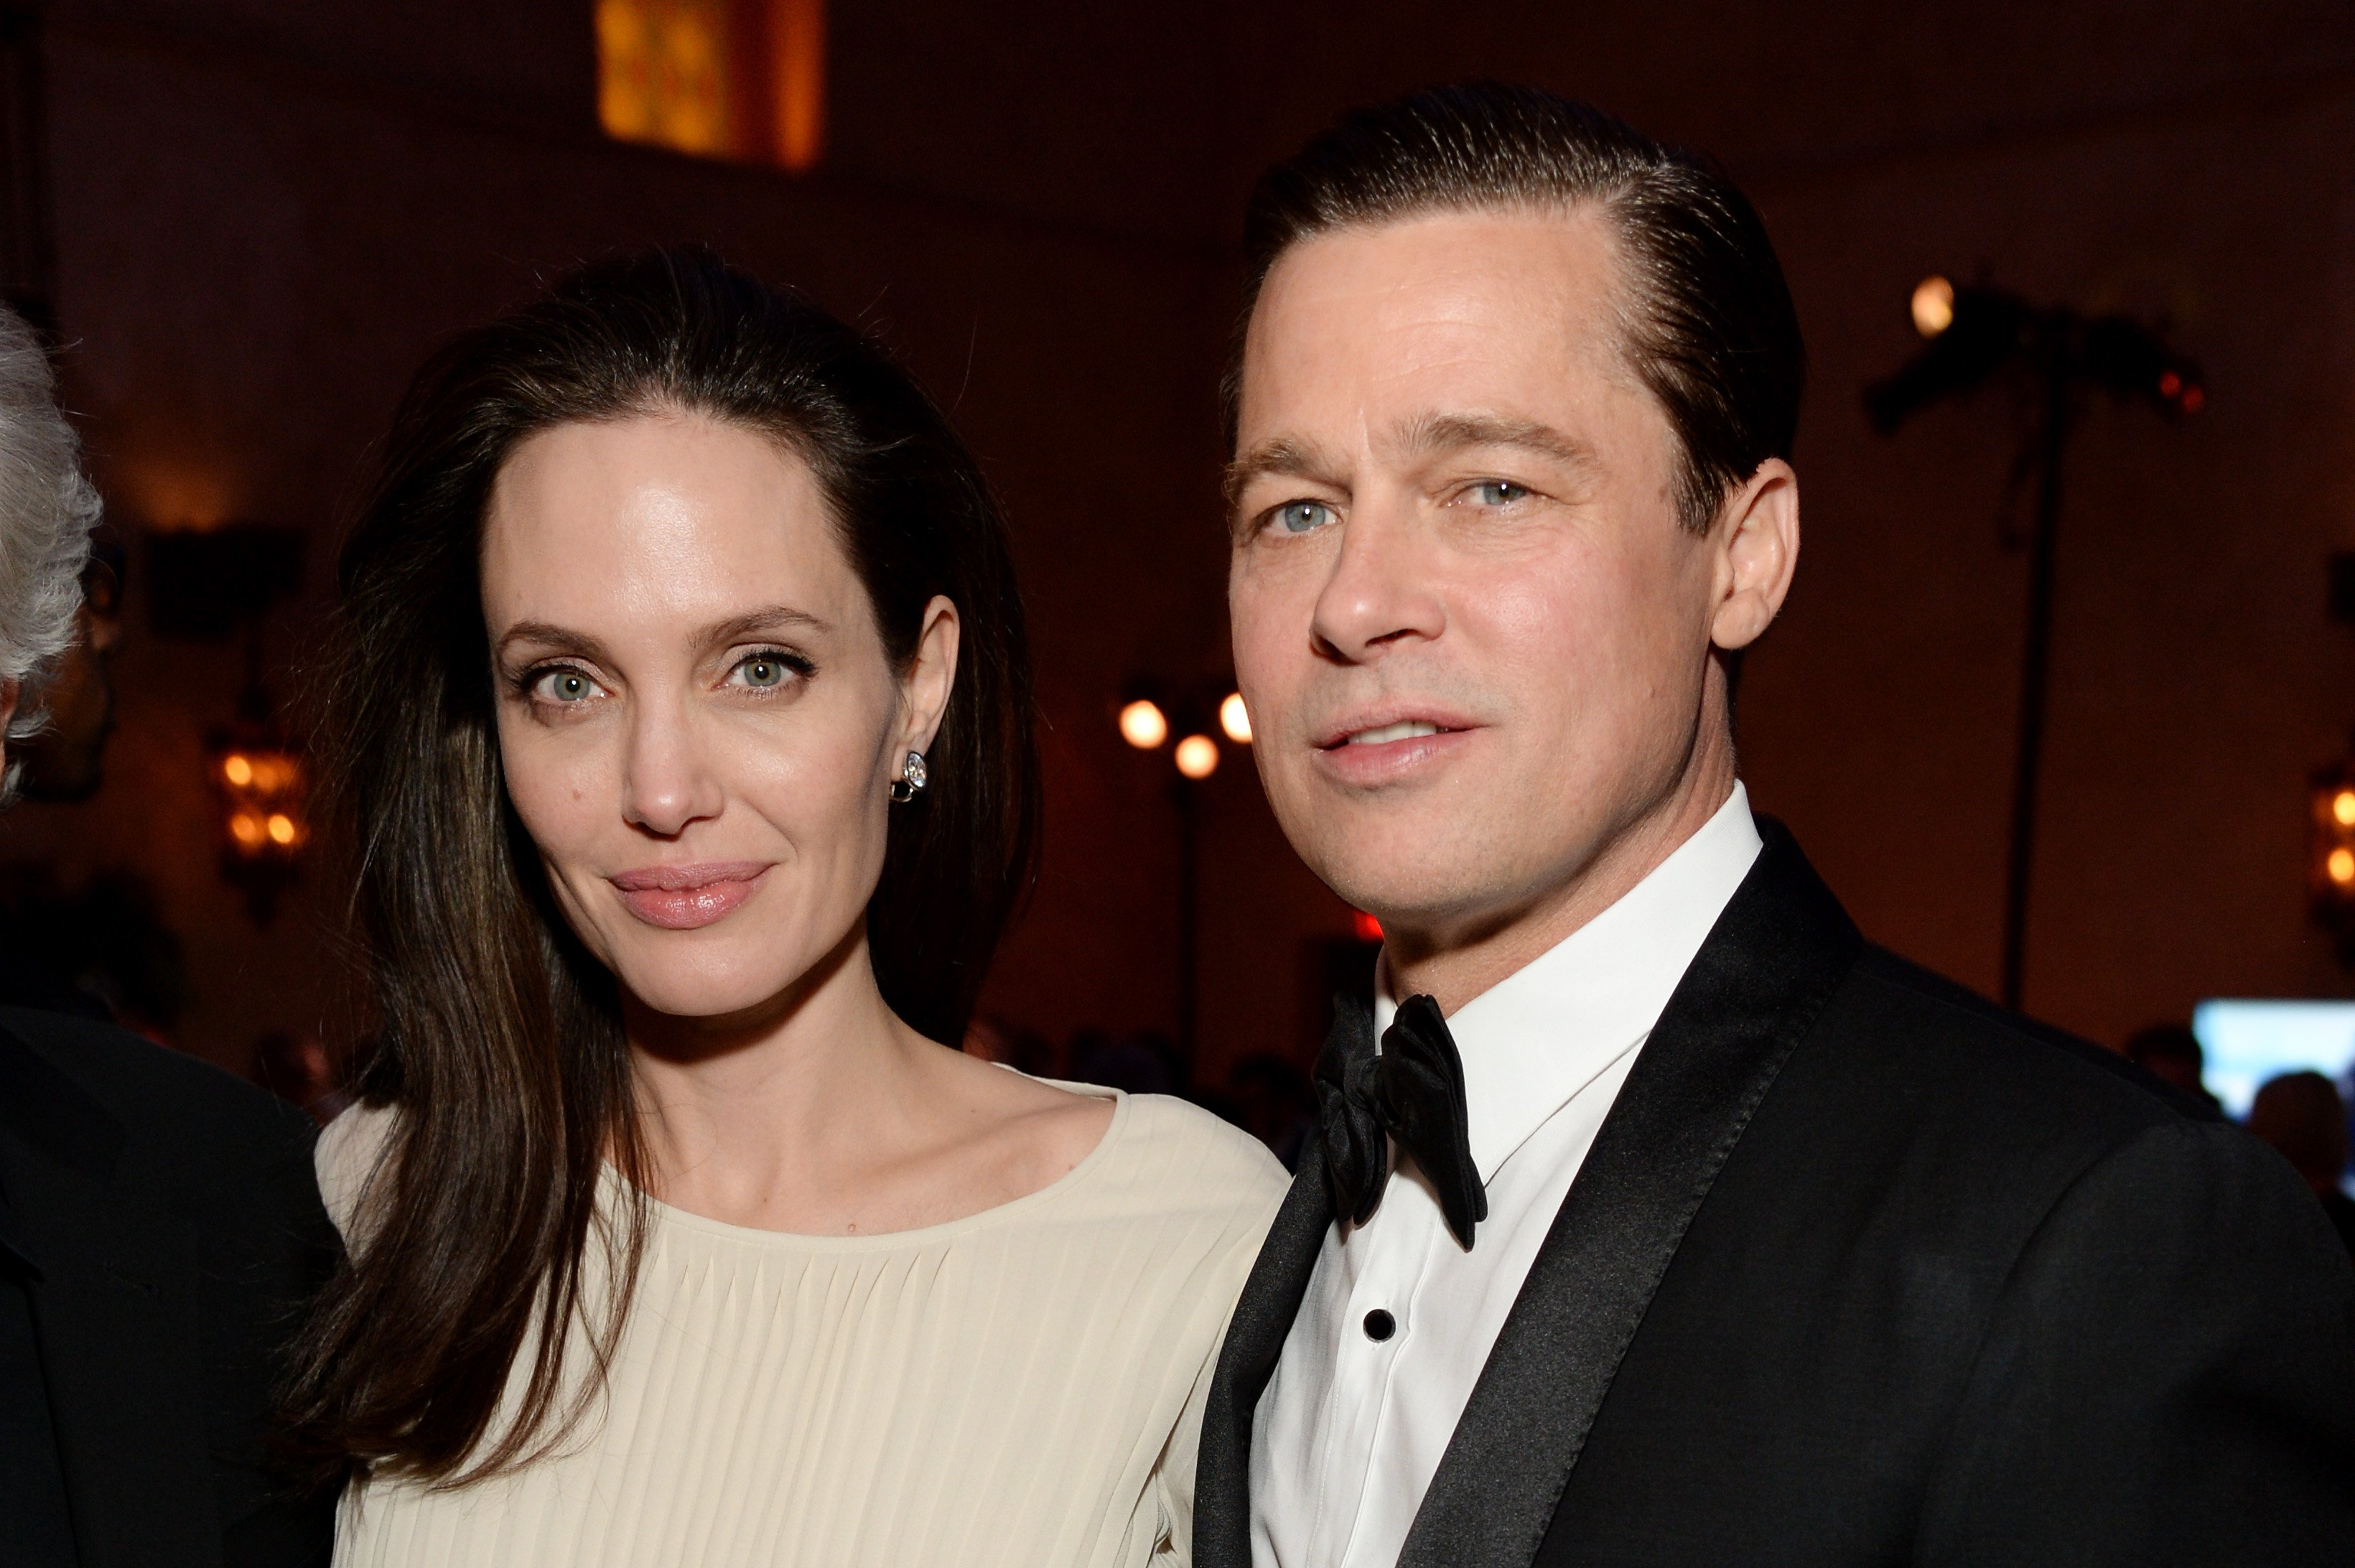 """Angelina Jolie and Brad pitt attend the after party of the """"By the Sea"""" premiere in Hollywood, California on November 5, 2015 